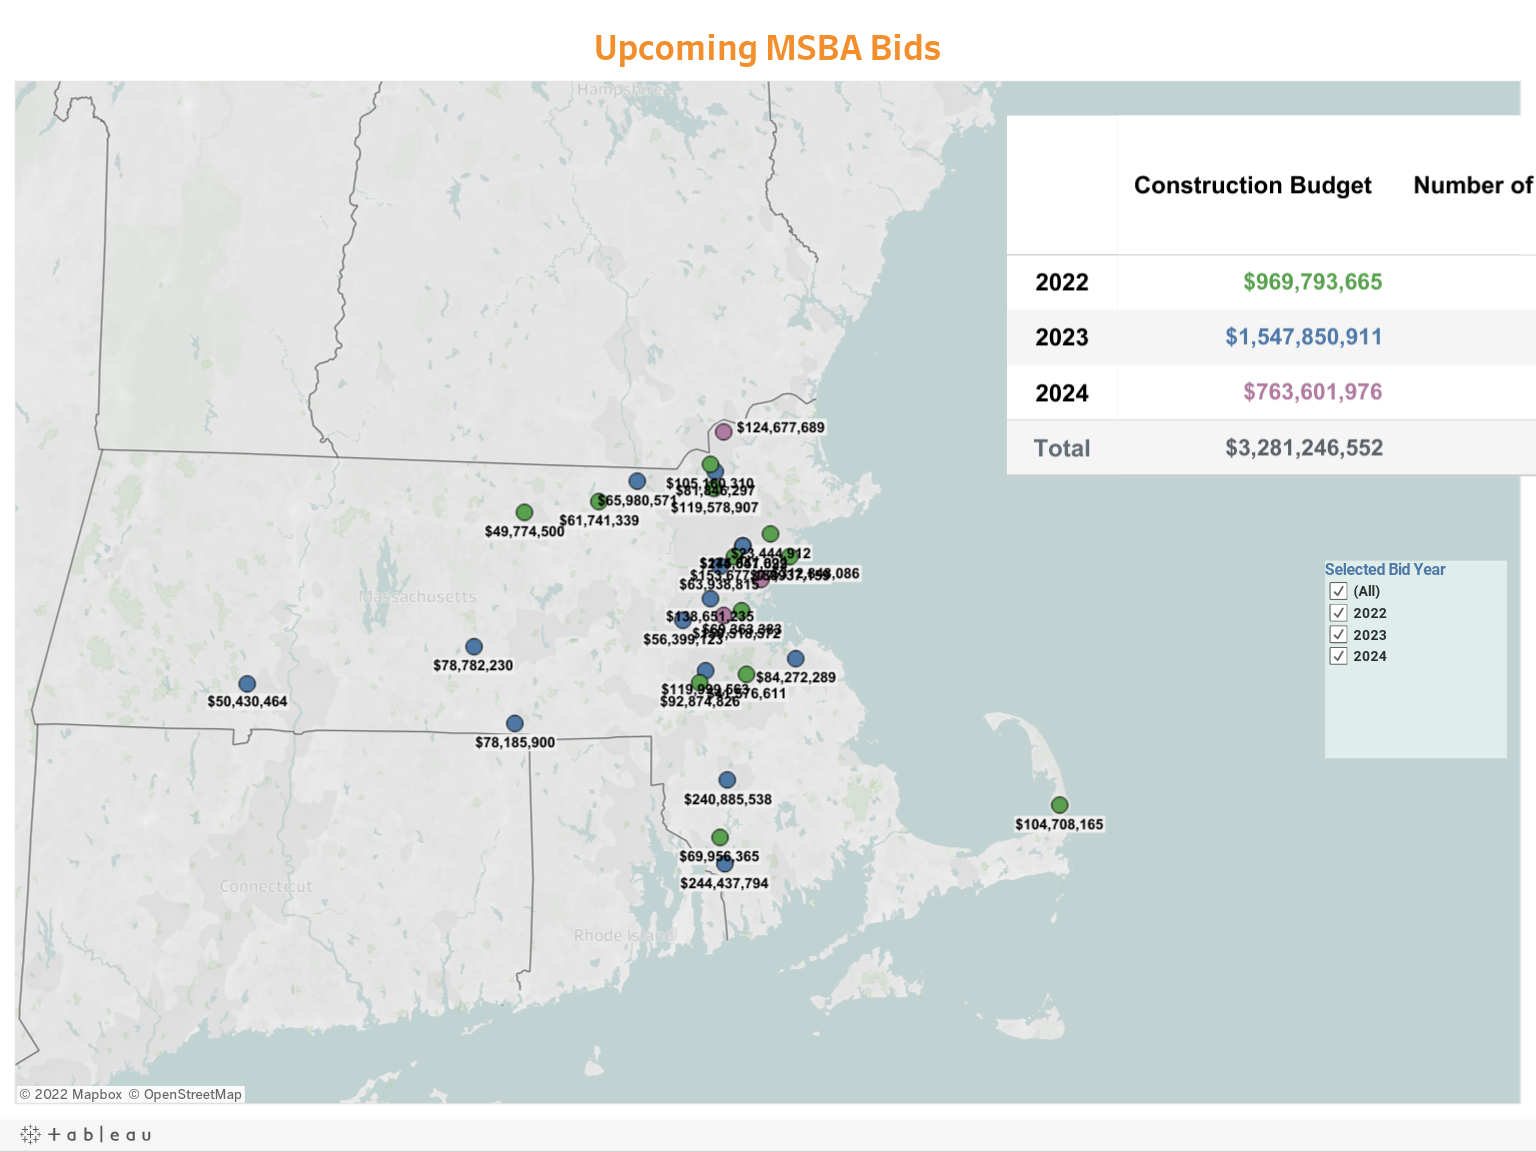 Upcoming_Msba_Bids